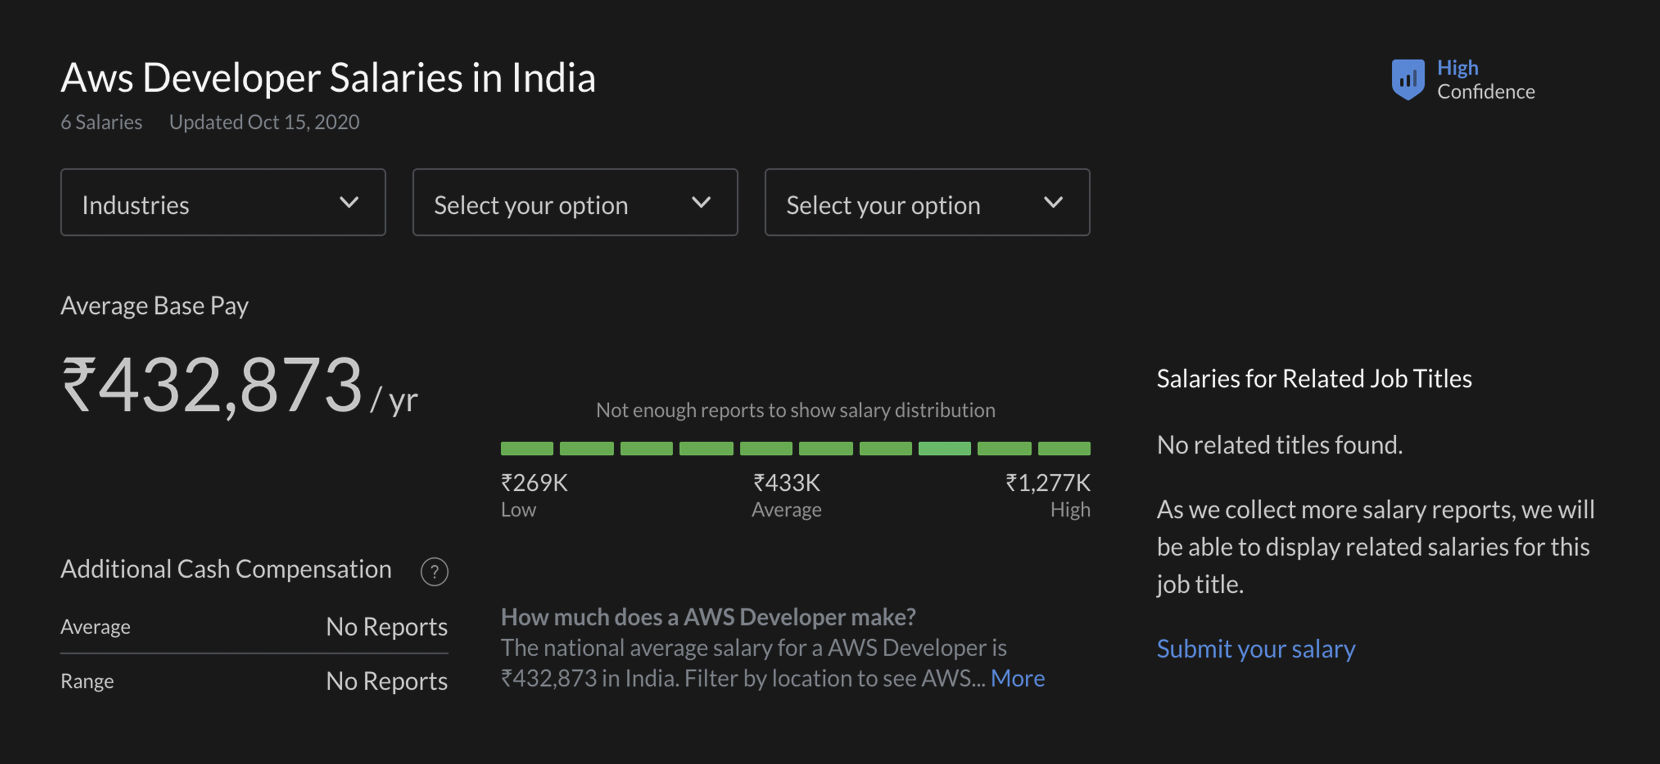 Indian salary for AWS developers